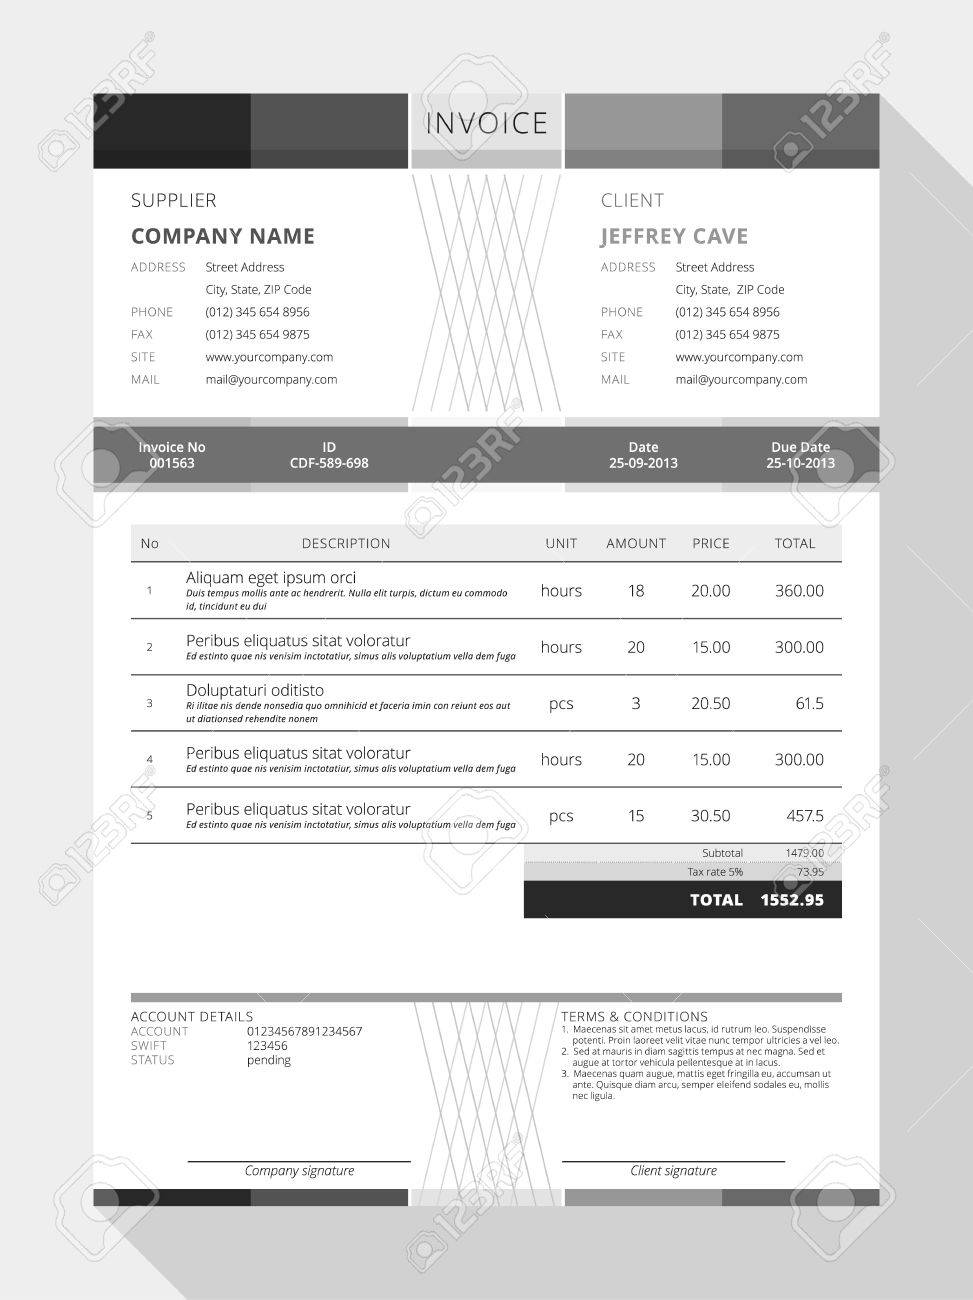 Angkajituus  Pleasing Design An Invoice  Professional Graphic Design Invoice  With Extraordinary Vector Customizable Invoice Form Template Design Vector   Design An Invoice With Appealing Ihop Receipt Also Receipt For Check In Addition Sephora Return Policy Without Receipt And Acknowledgement Of Receipt Form As Well As Best Buy Return Policy With Receipt Additionally Medical Receipt From Happytomco With Angkajituus  Extraordinary Design An Invoice  Professional Graphic Design Invoice  With Appealing Vector Customizable Invoice Form Template Design Vector   Design An Invoice And Pleasing Ihop Receipt Also Receipt For Check In Addition Sephora Return Policy Without Receipt From Happytomco